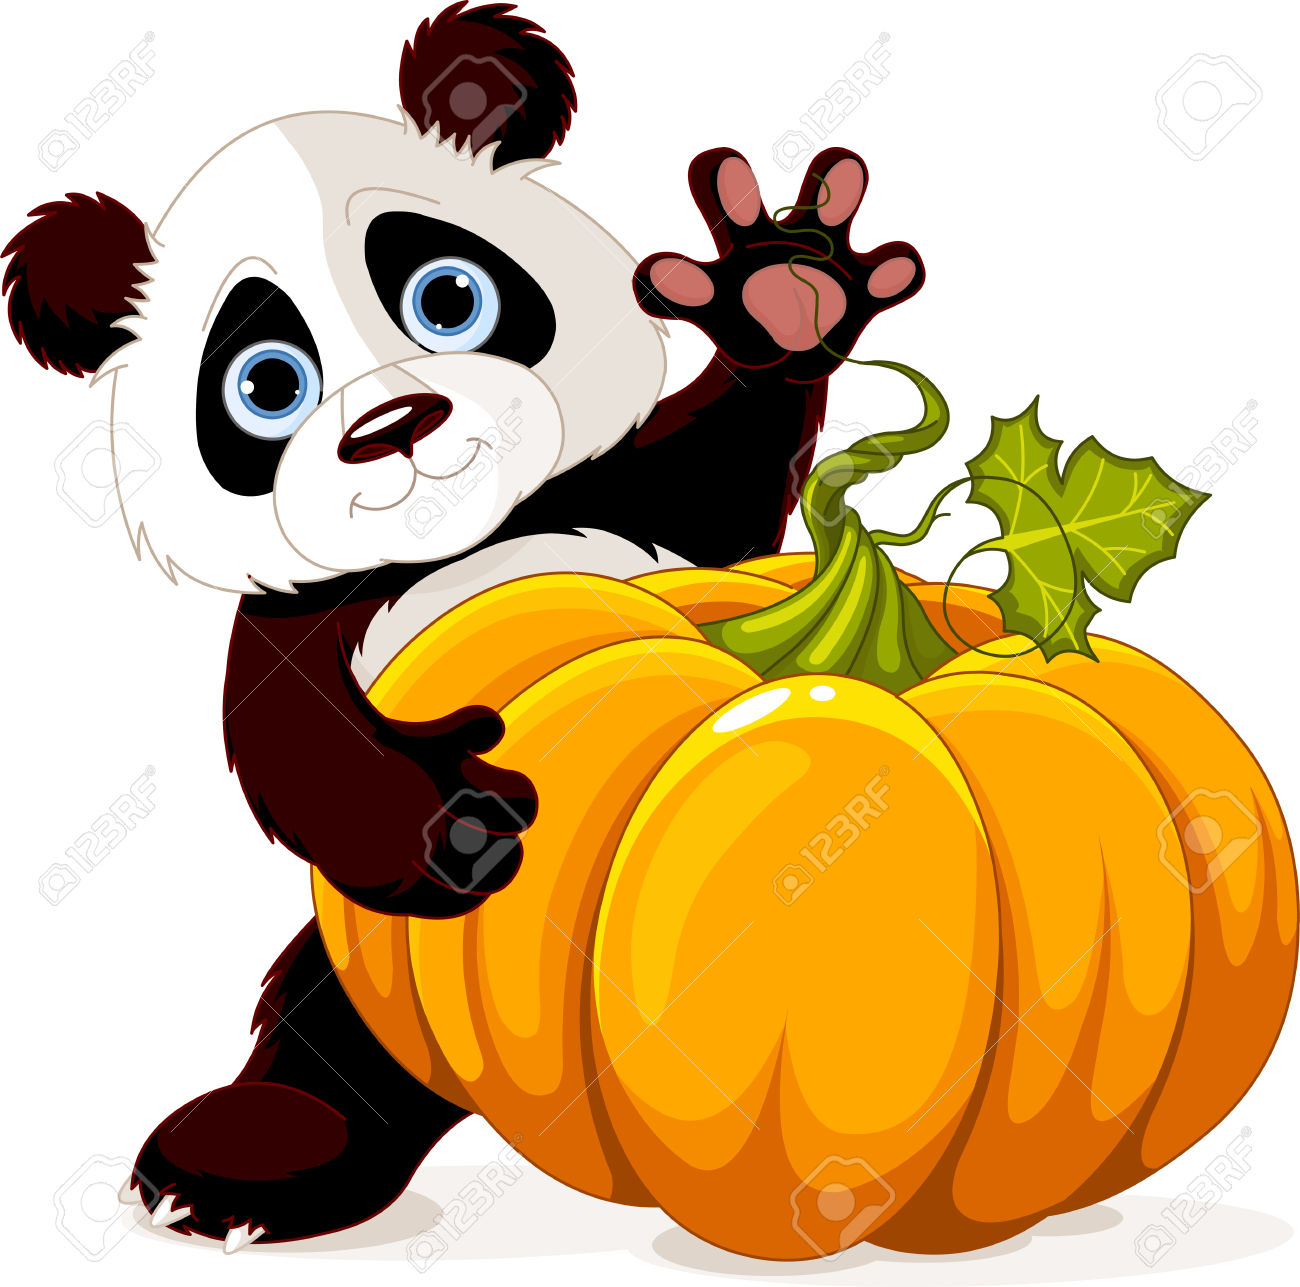 Cute Little Panda Holding Giant Pumpkin Royalty Free Cliparts.